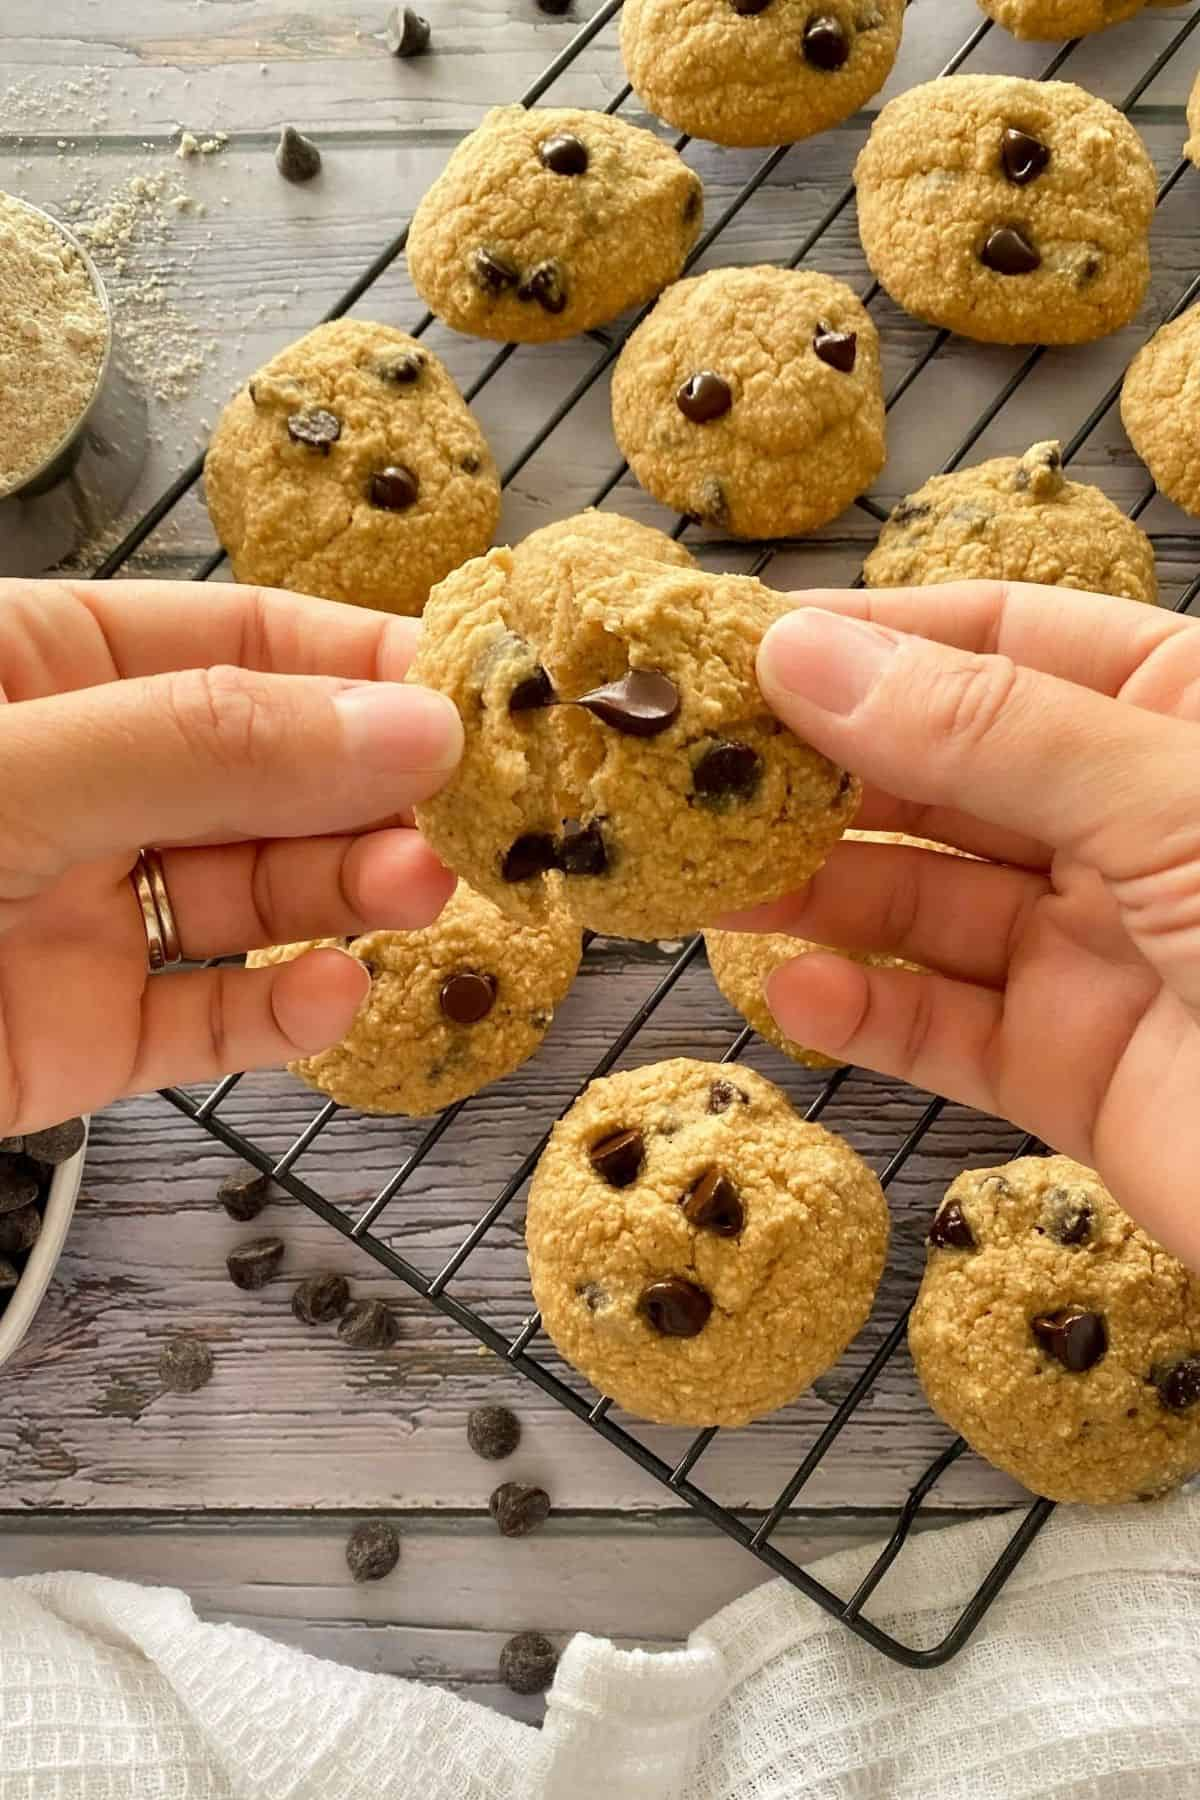 Hand pulling apart chocolate chip cookie into two halves.